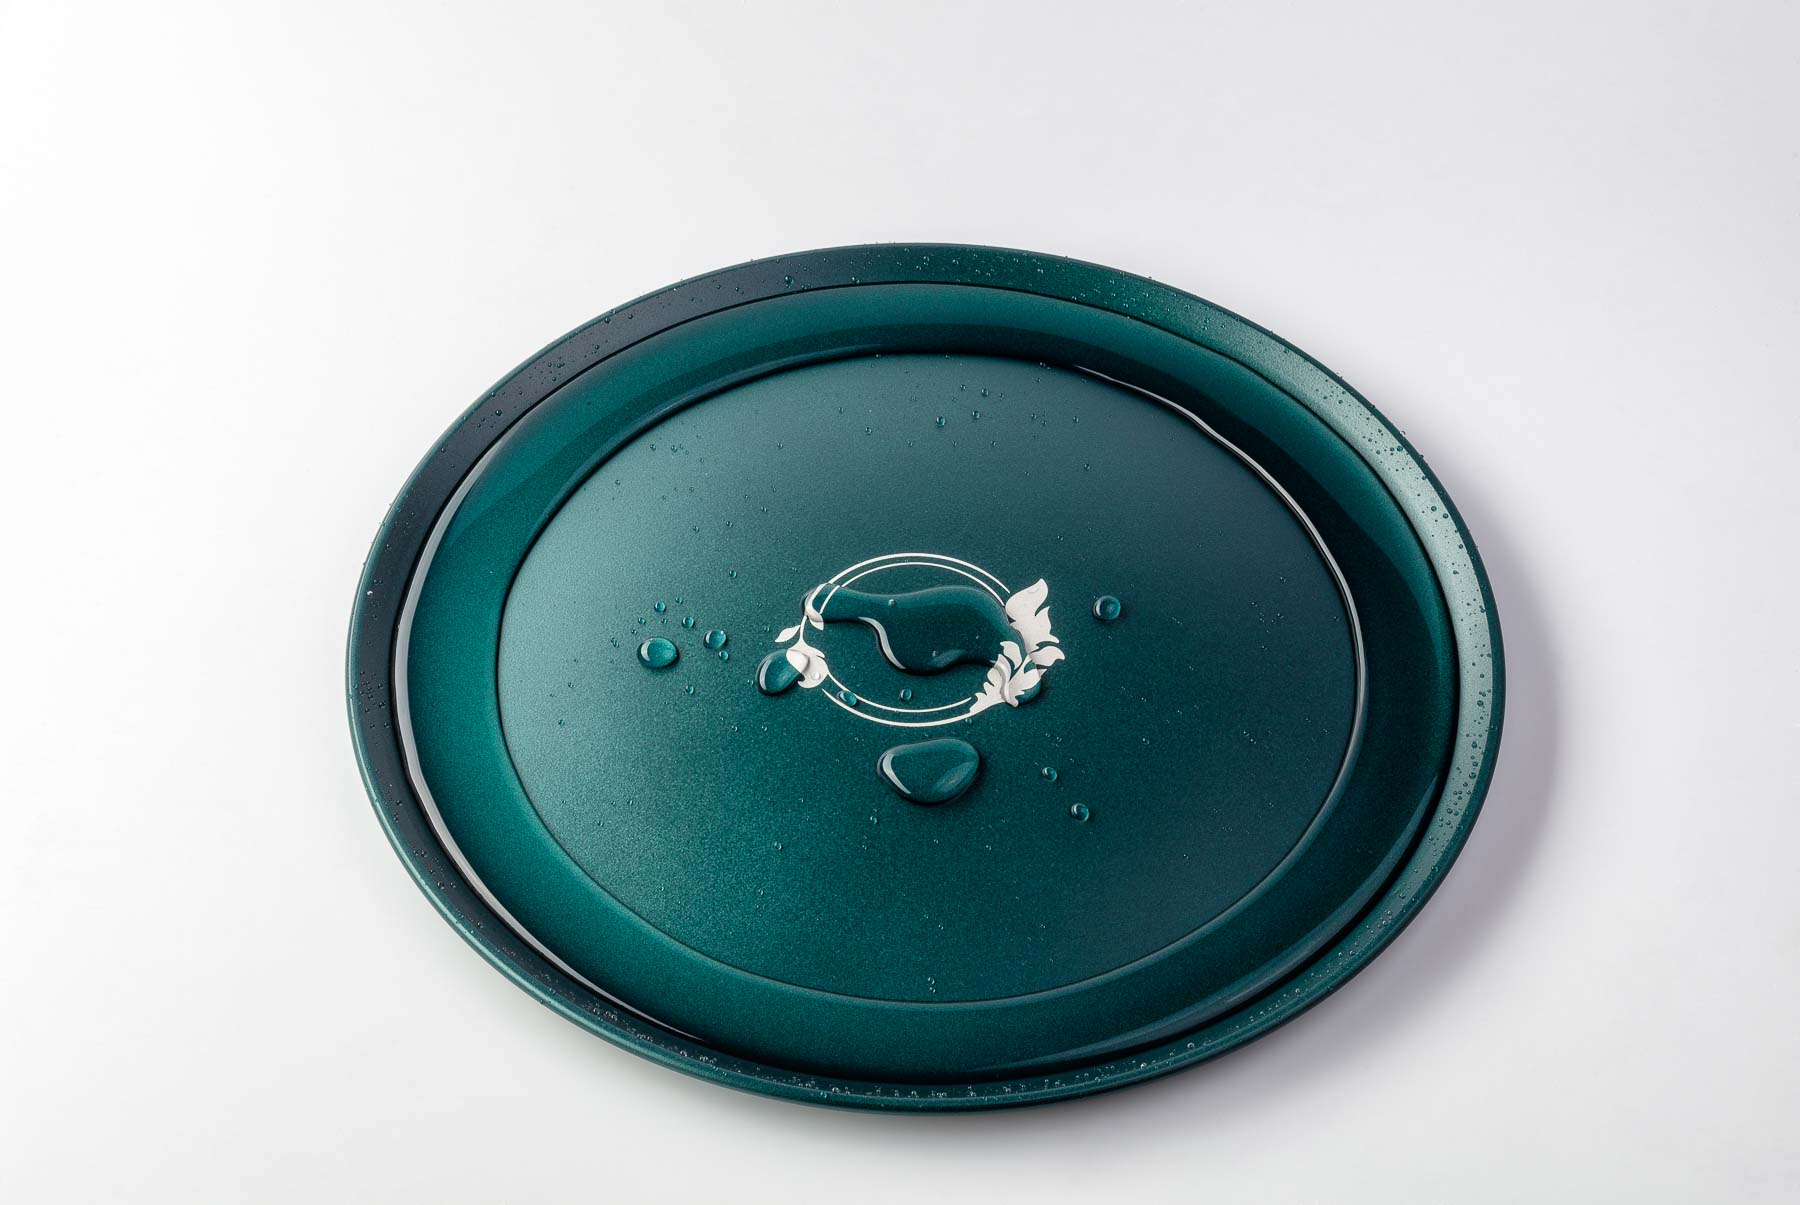 Defrost plate with water on side